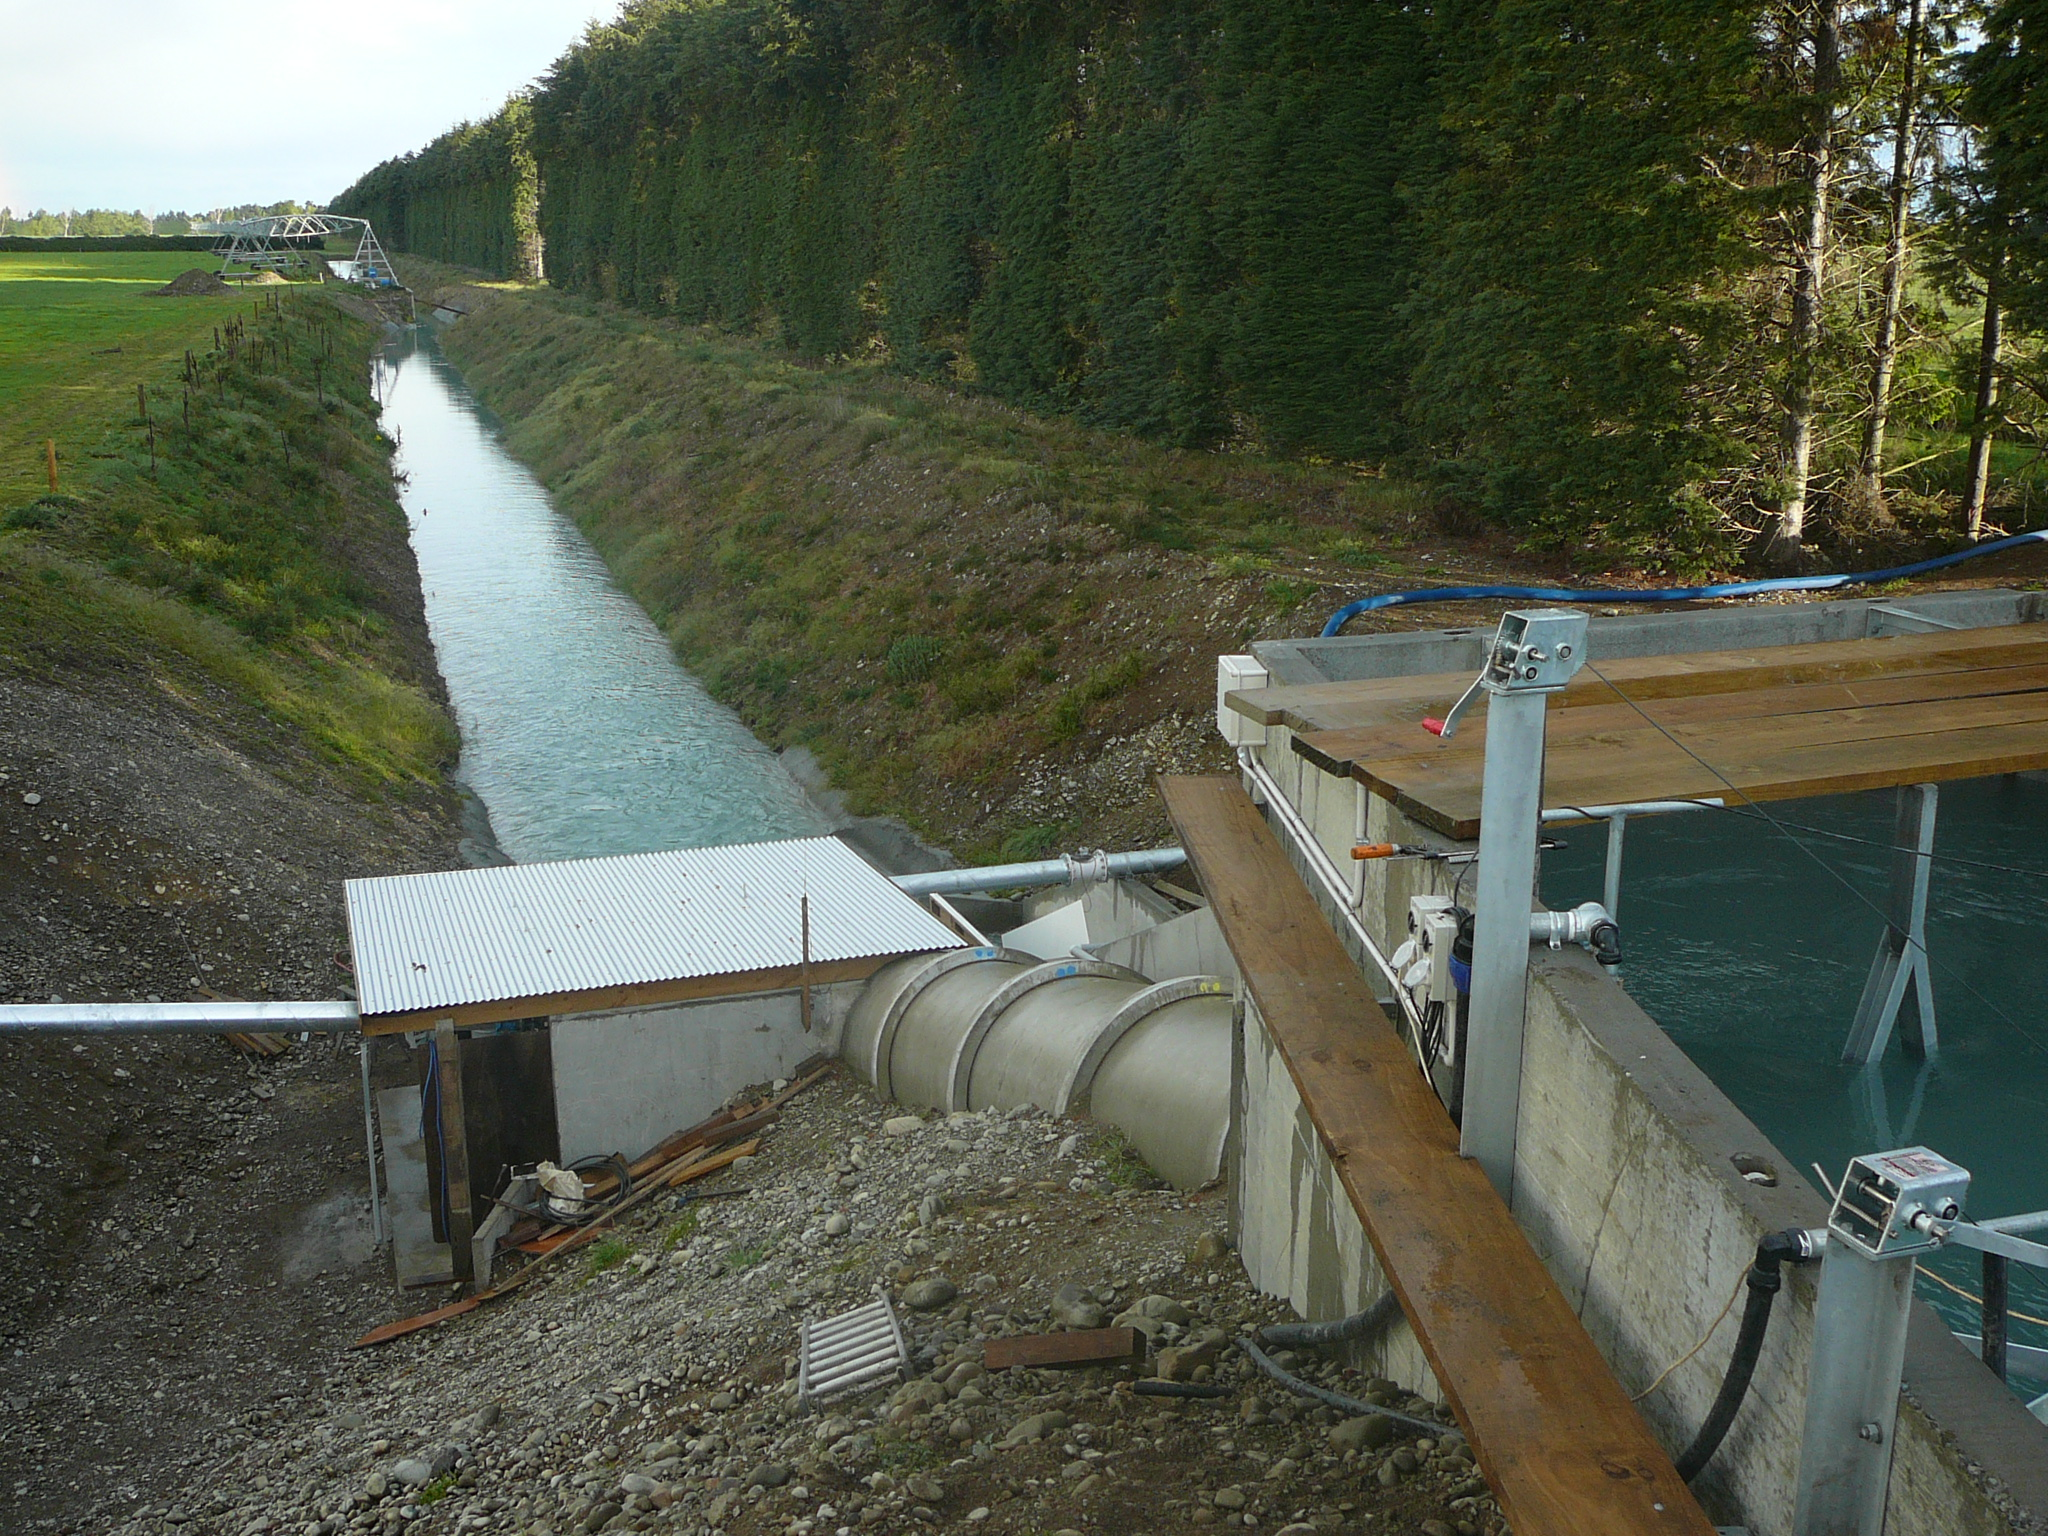 Hydropower, water turbine, pumping, crossflow, generation, hinds, rangitata, ealing pastures